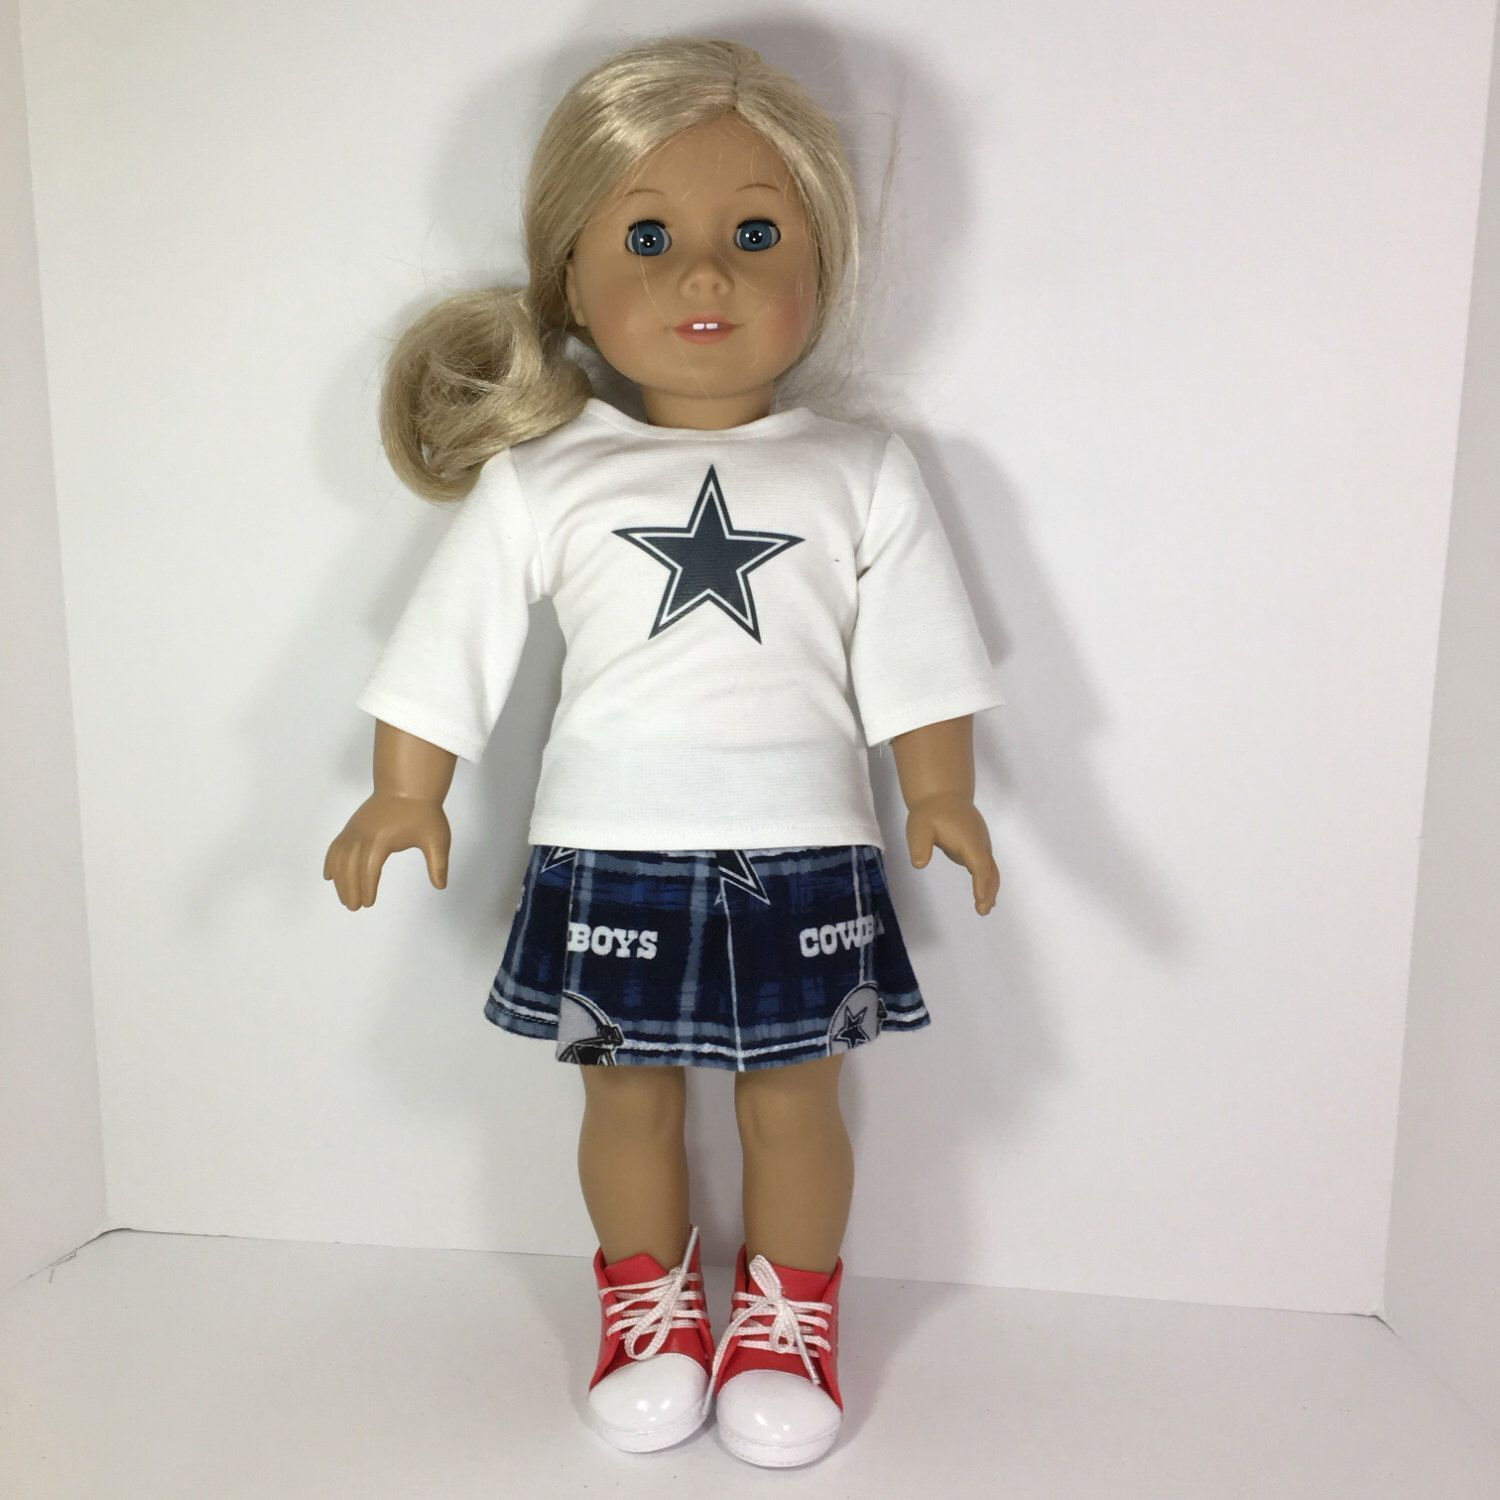 18 inch Doll Clothes - football Printed Cheerleader Outfit fits dolls like American Girl, Journey Girl, My Generation #18inchcheerleaderclothes Your Doll will look fabulous for the Sunday Games. Planning a football themed party? Now your doll can dress with you. *this item comes with the shirt and Skirt. All other items not included. If you have a team you want that isn't available, all you have to do is select custom team and leave a note on which team you want. Depending on fabric availabili #18inchcheerleaderclothes